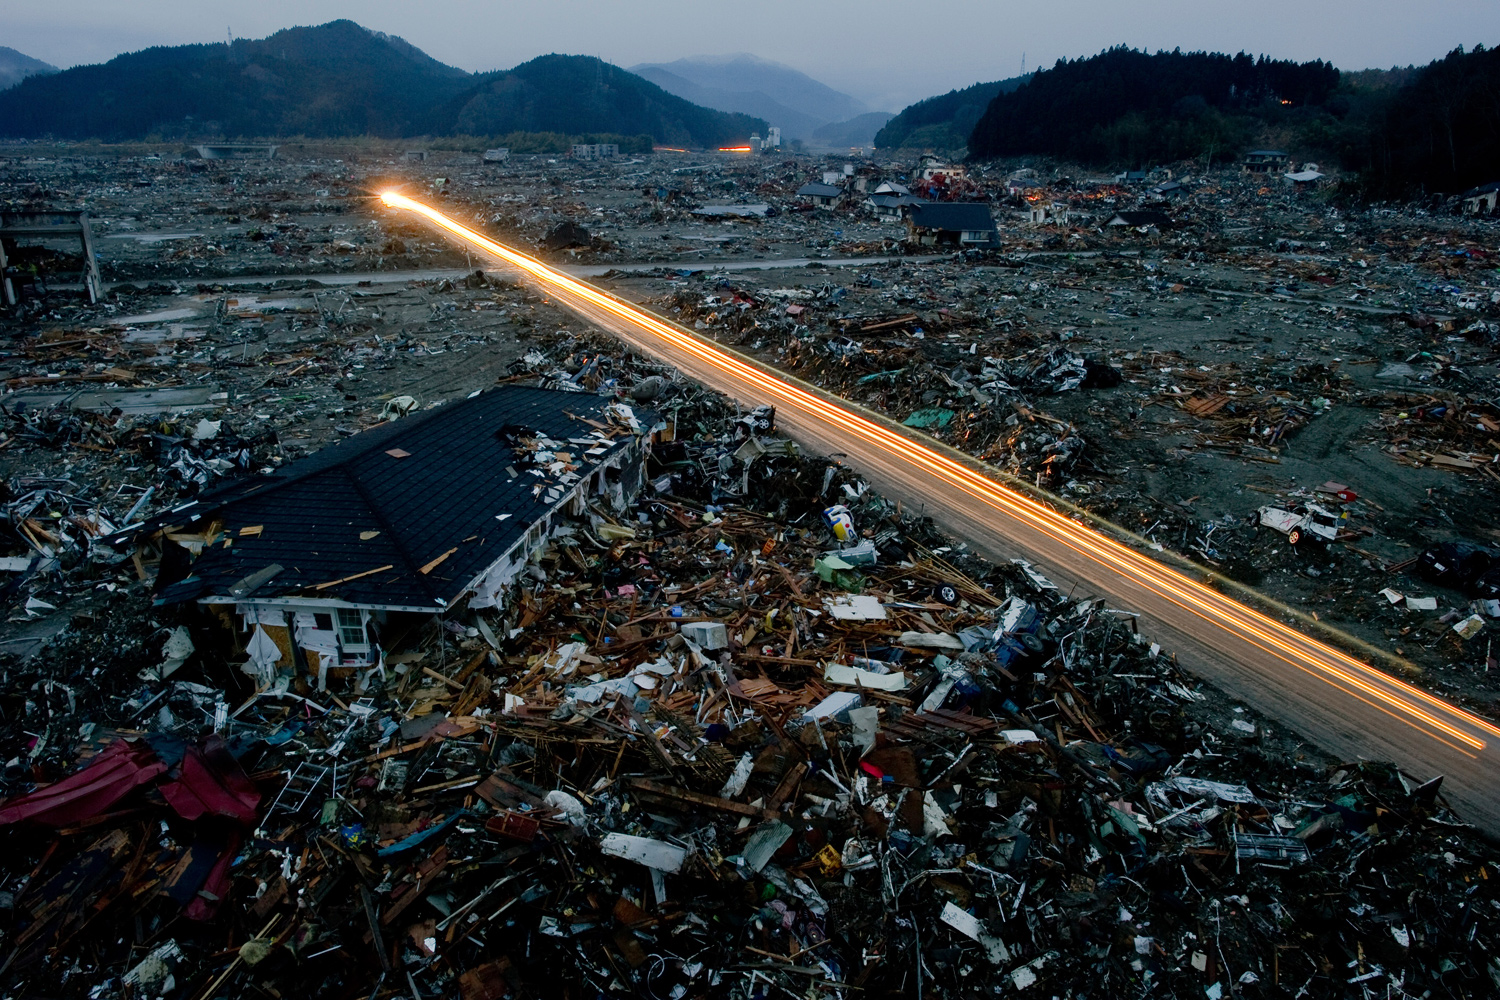 March 22, 2011. A general night view taken with a longer exposure, shows destroyed houses and debris in the tsunami-damaged city of Rikuzentakata, in Japan's Iwate prefecture.